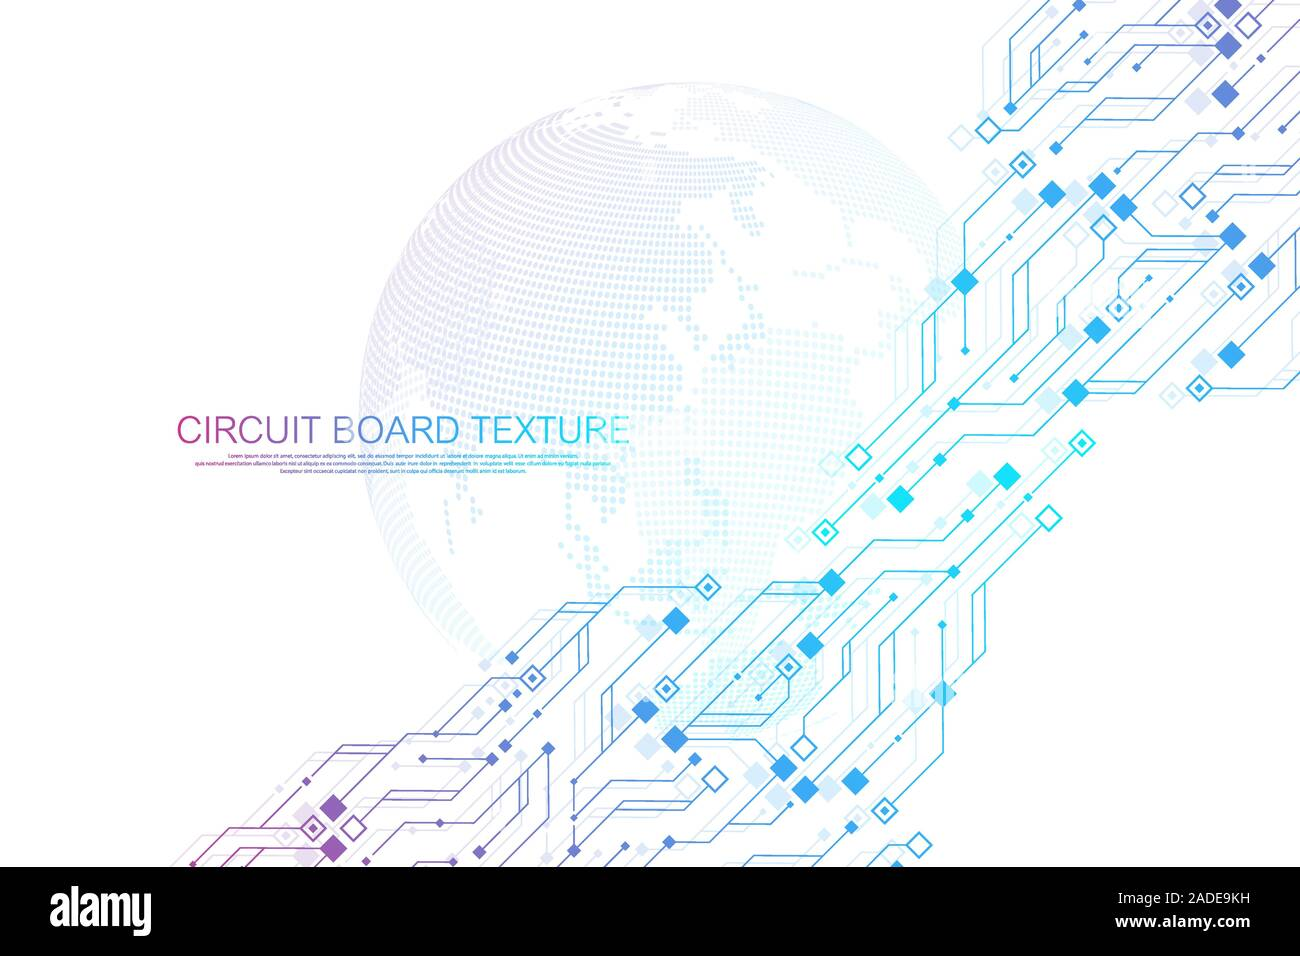 circuit diagram wallpaper technology abstract circuit board texture background high tech  circuit board texture background